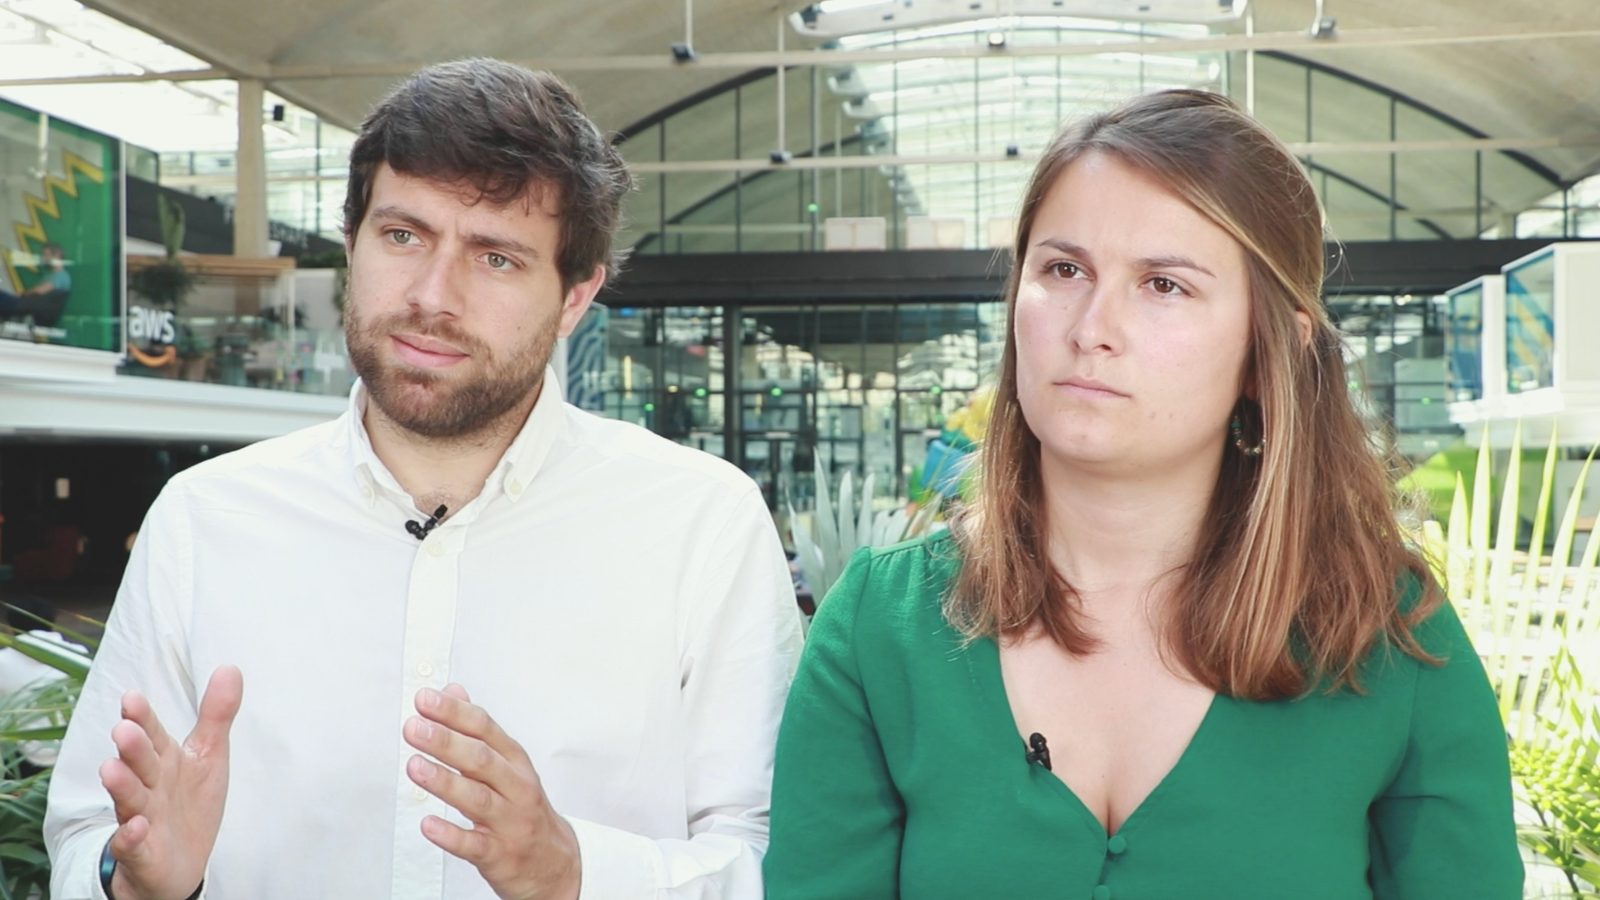 Thumbnail for news article called Building Something with Maud Payan & Anthoine Dusselier, Founders of Tarmac Technologies (Future 40, 2019)